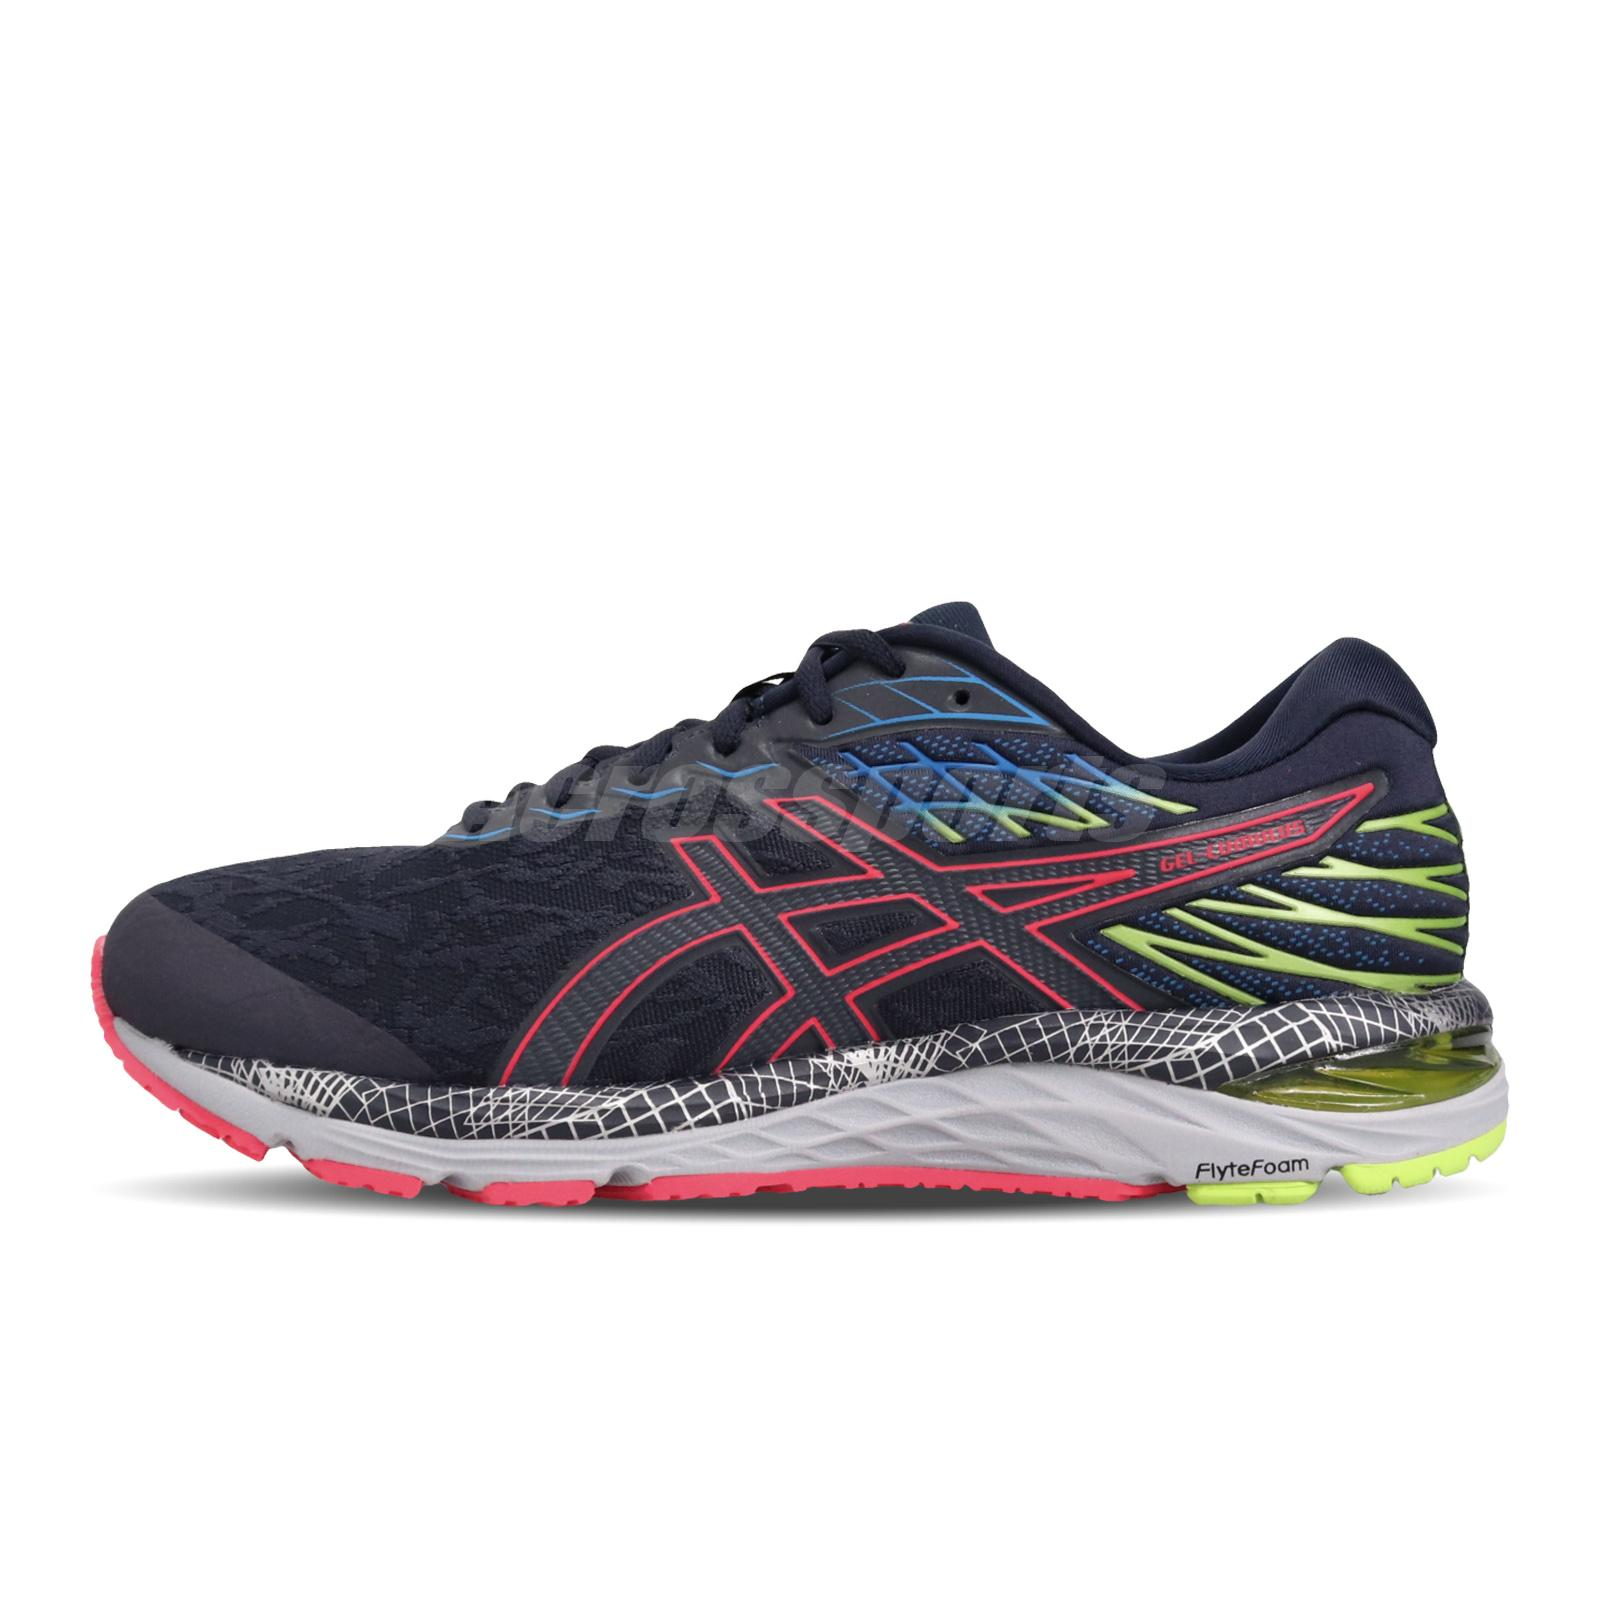 mens mizuno running shoes size 9.5 inches heels